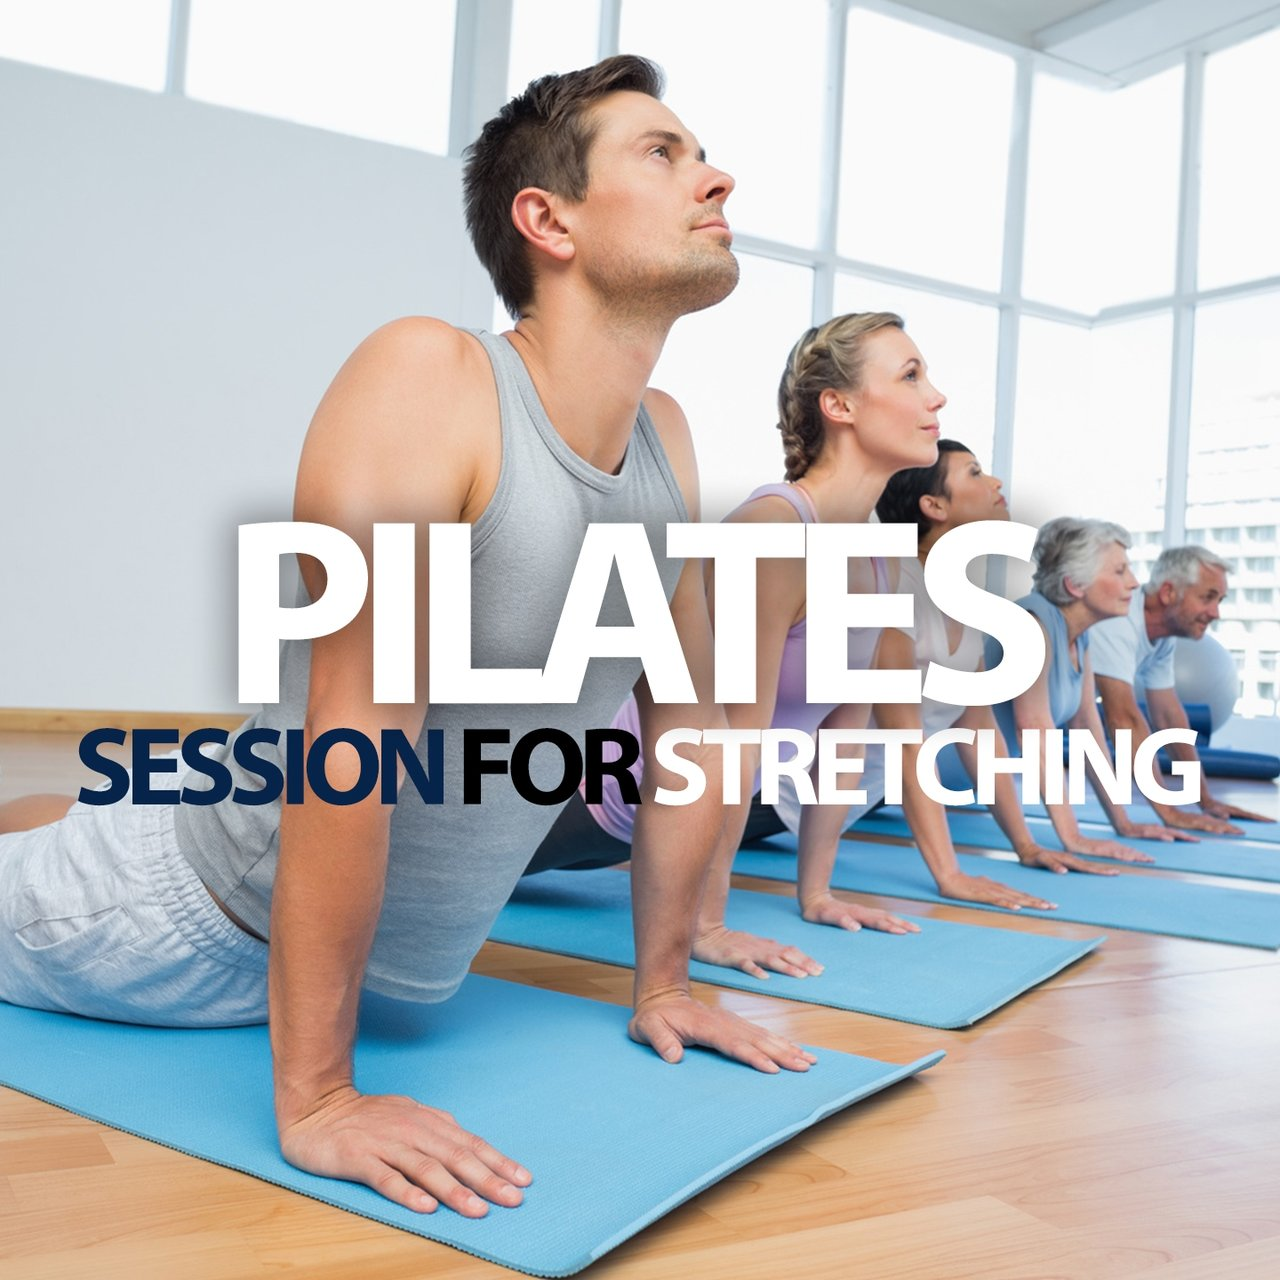 Pilates Session For Stretching